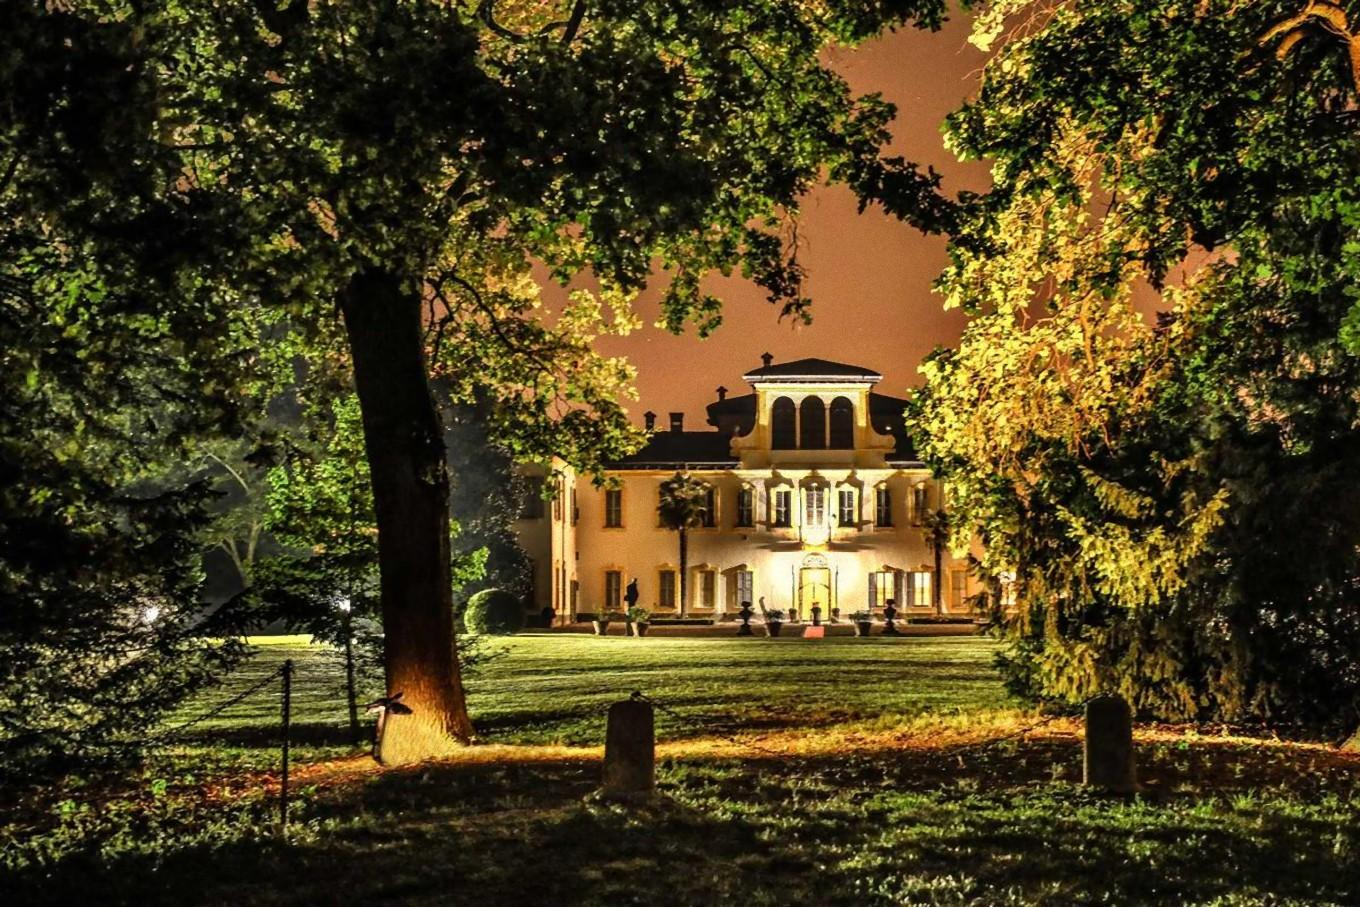 night-view-park-villa-gromo